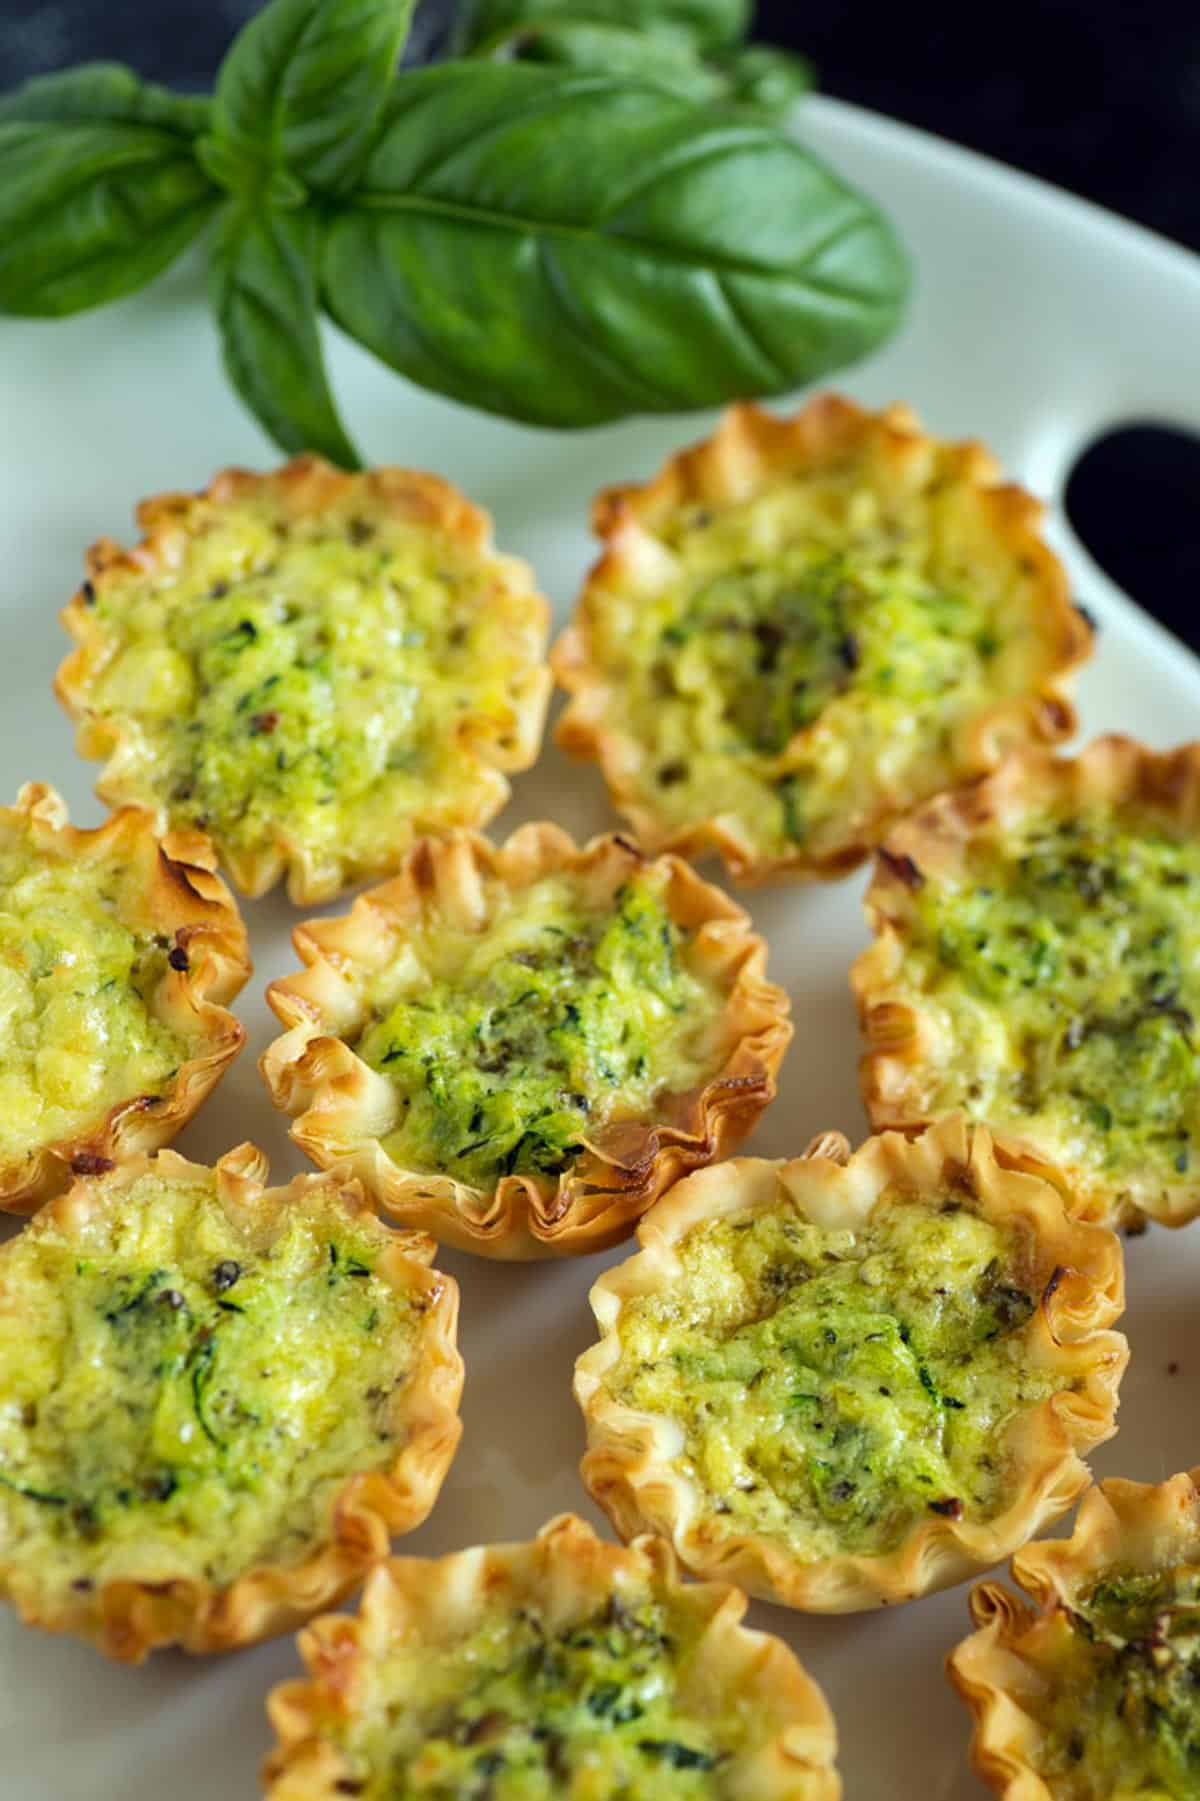 A platter of zucchini quiches with basil leaves.